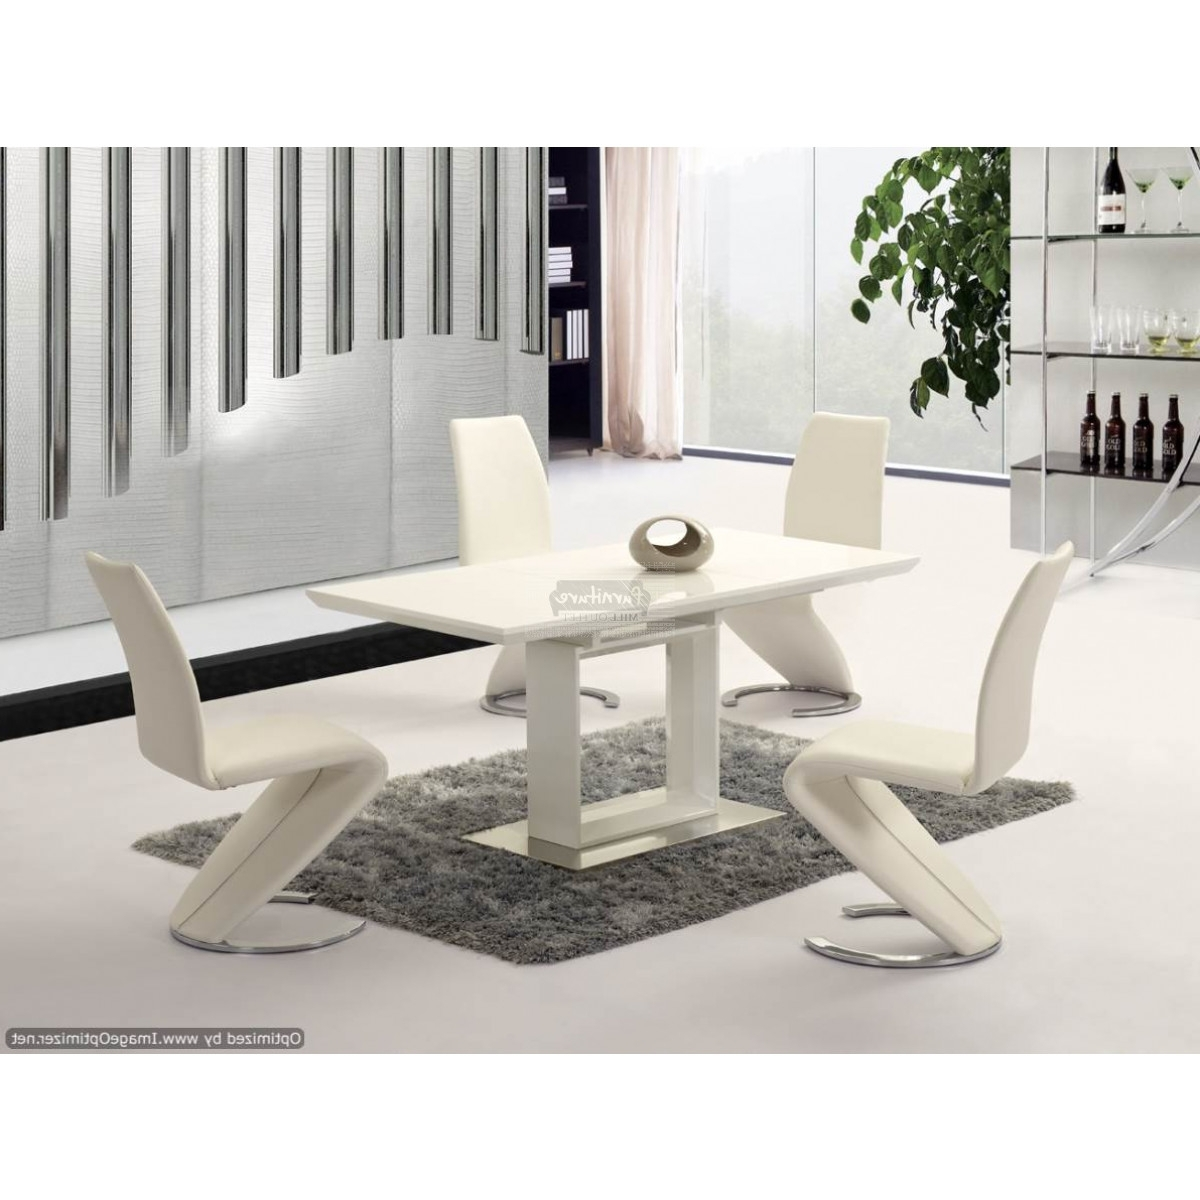 Gloss Dining Set With Widely Used Space White High Gloss Extending Dining Table – 120Cm To 160Cm (View 13 of 25)